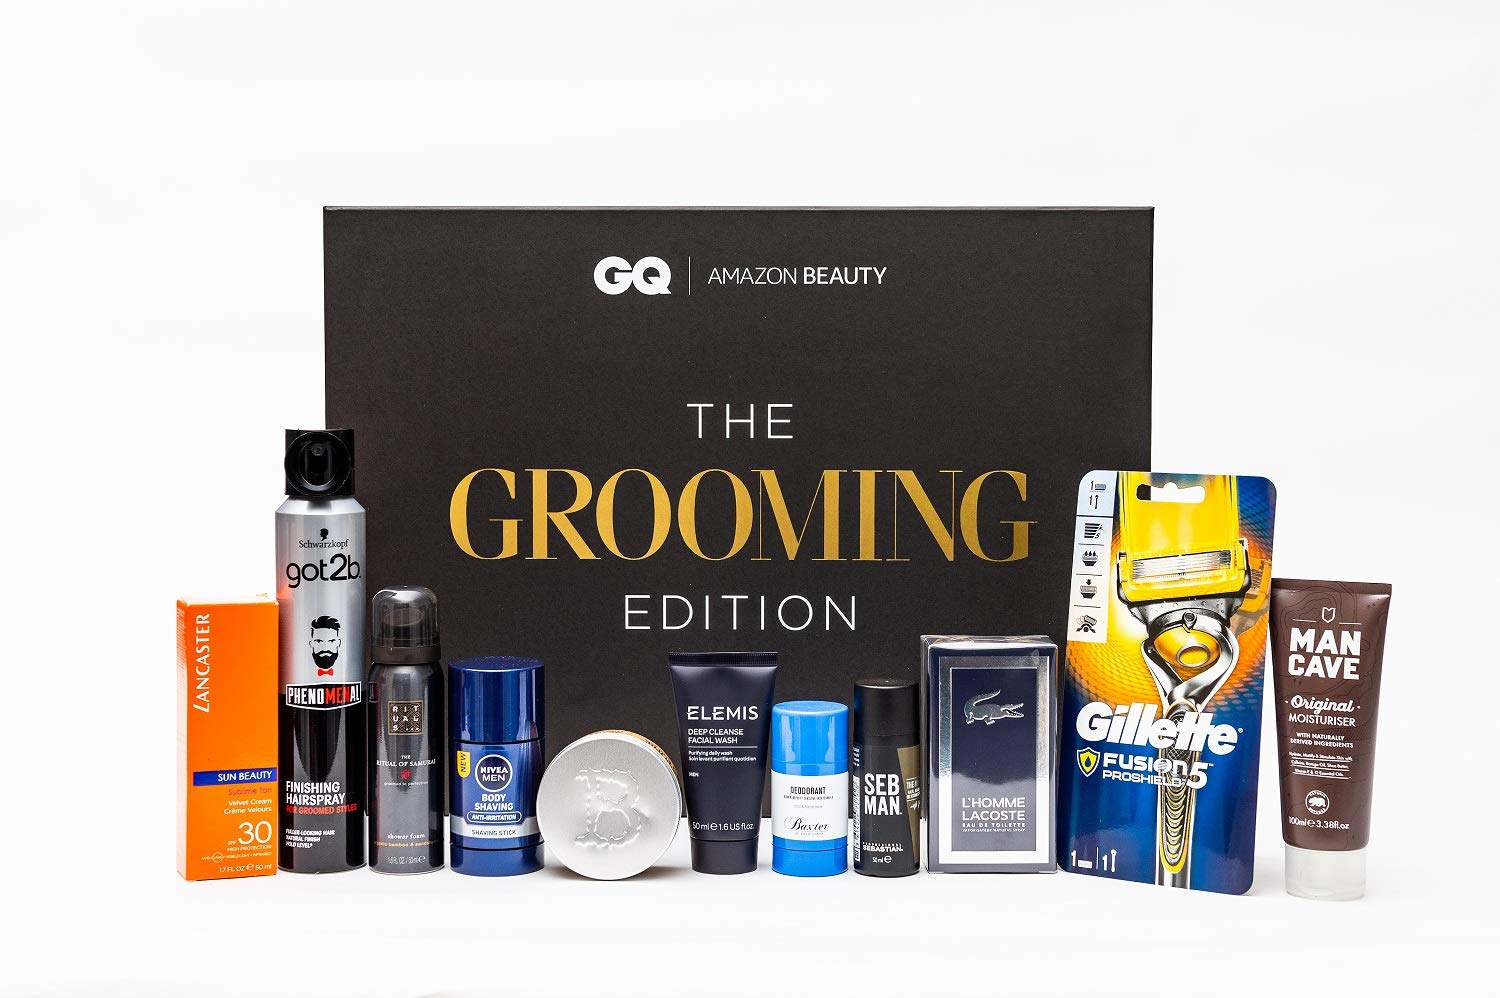 Amazon Beauty x GQ Presents: The Grooming Edition (including 20% off Philips S9000 Prestige)